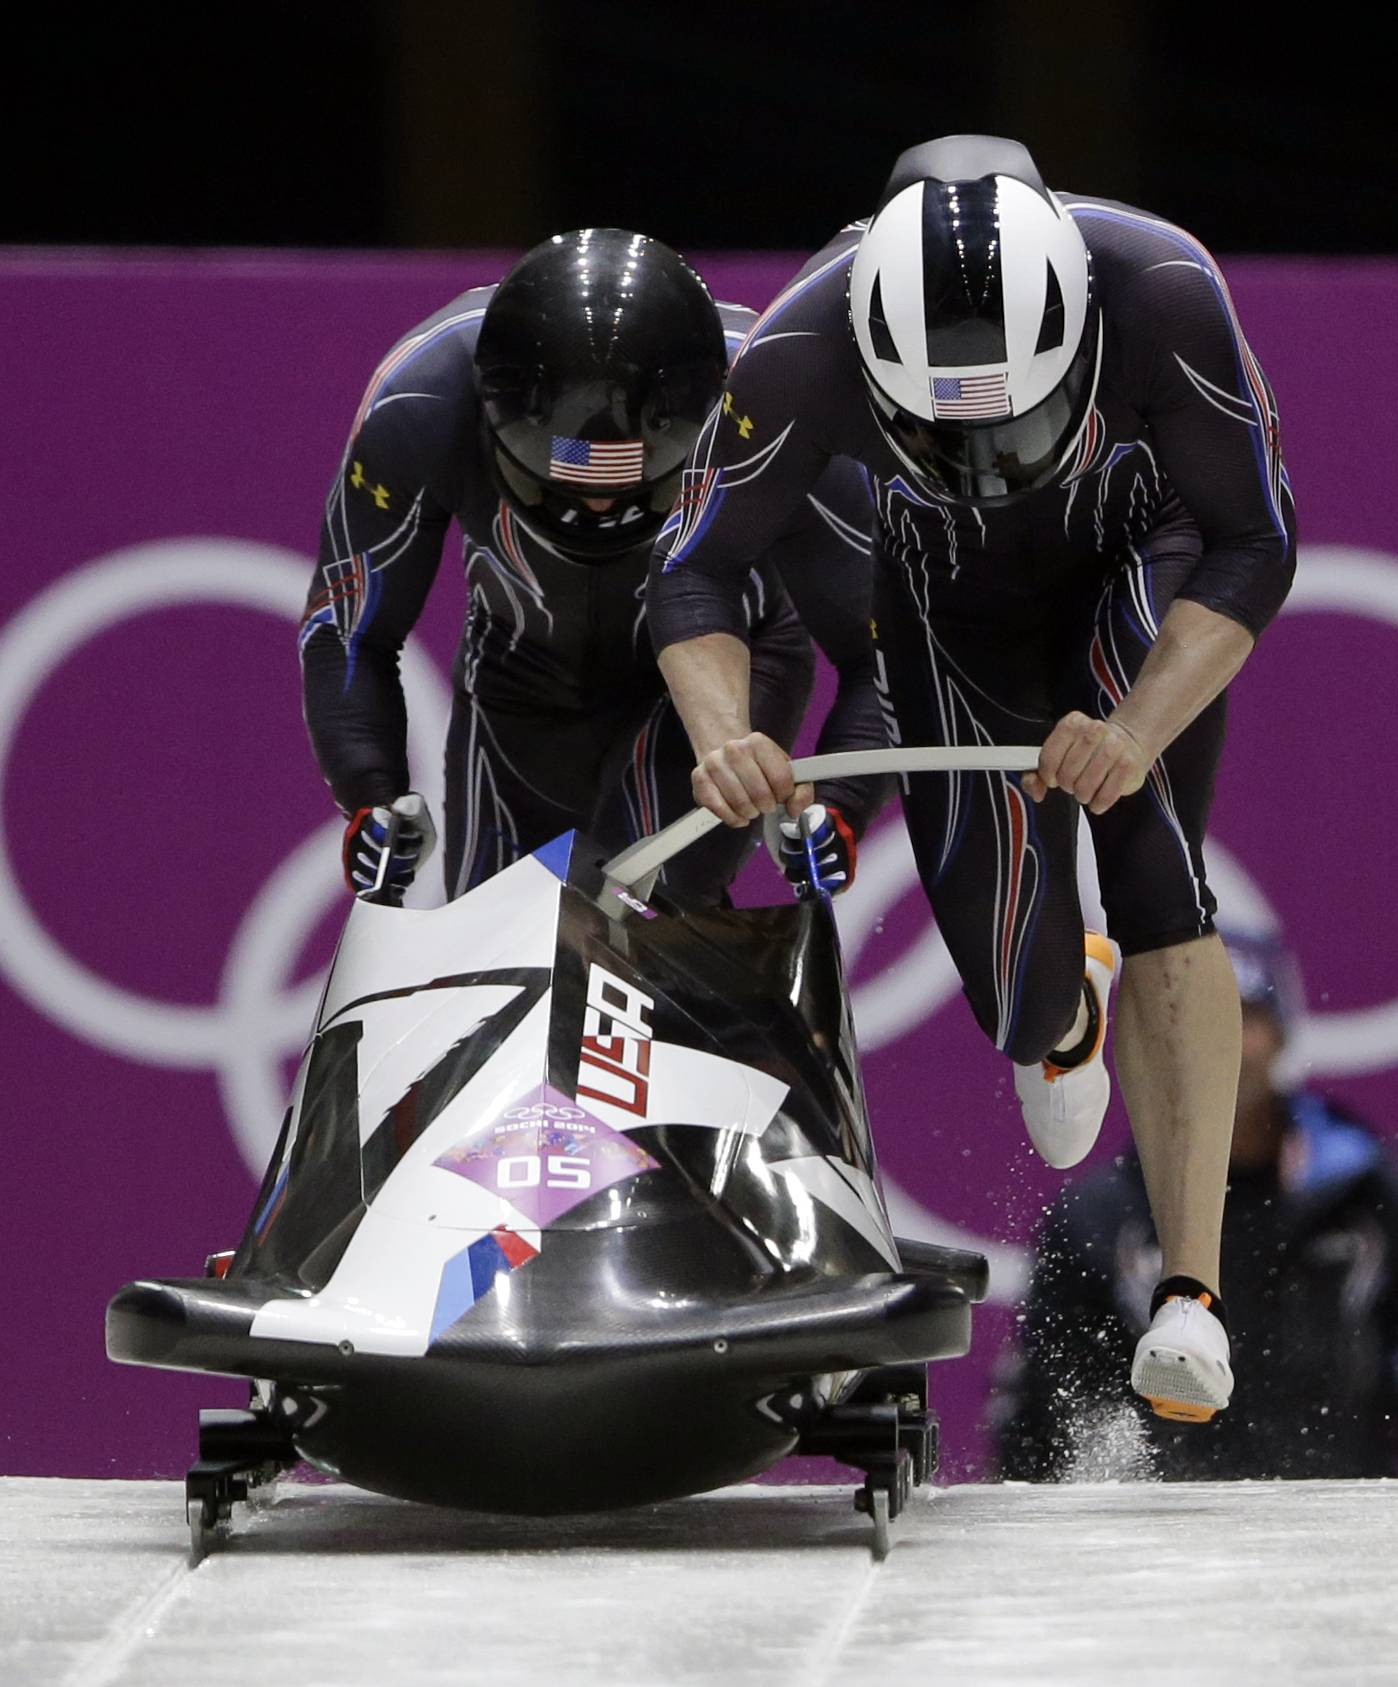 The team from the United States USA-2, piloted by Cory Butner and brakeman Christopher Fogt, start their first run during the men's two-man bobsled competition at the 2014 Winter Olympics, Sunday, Feb. 16, 2014, in Krasnaya Polyana, Russia.